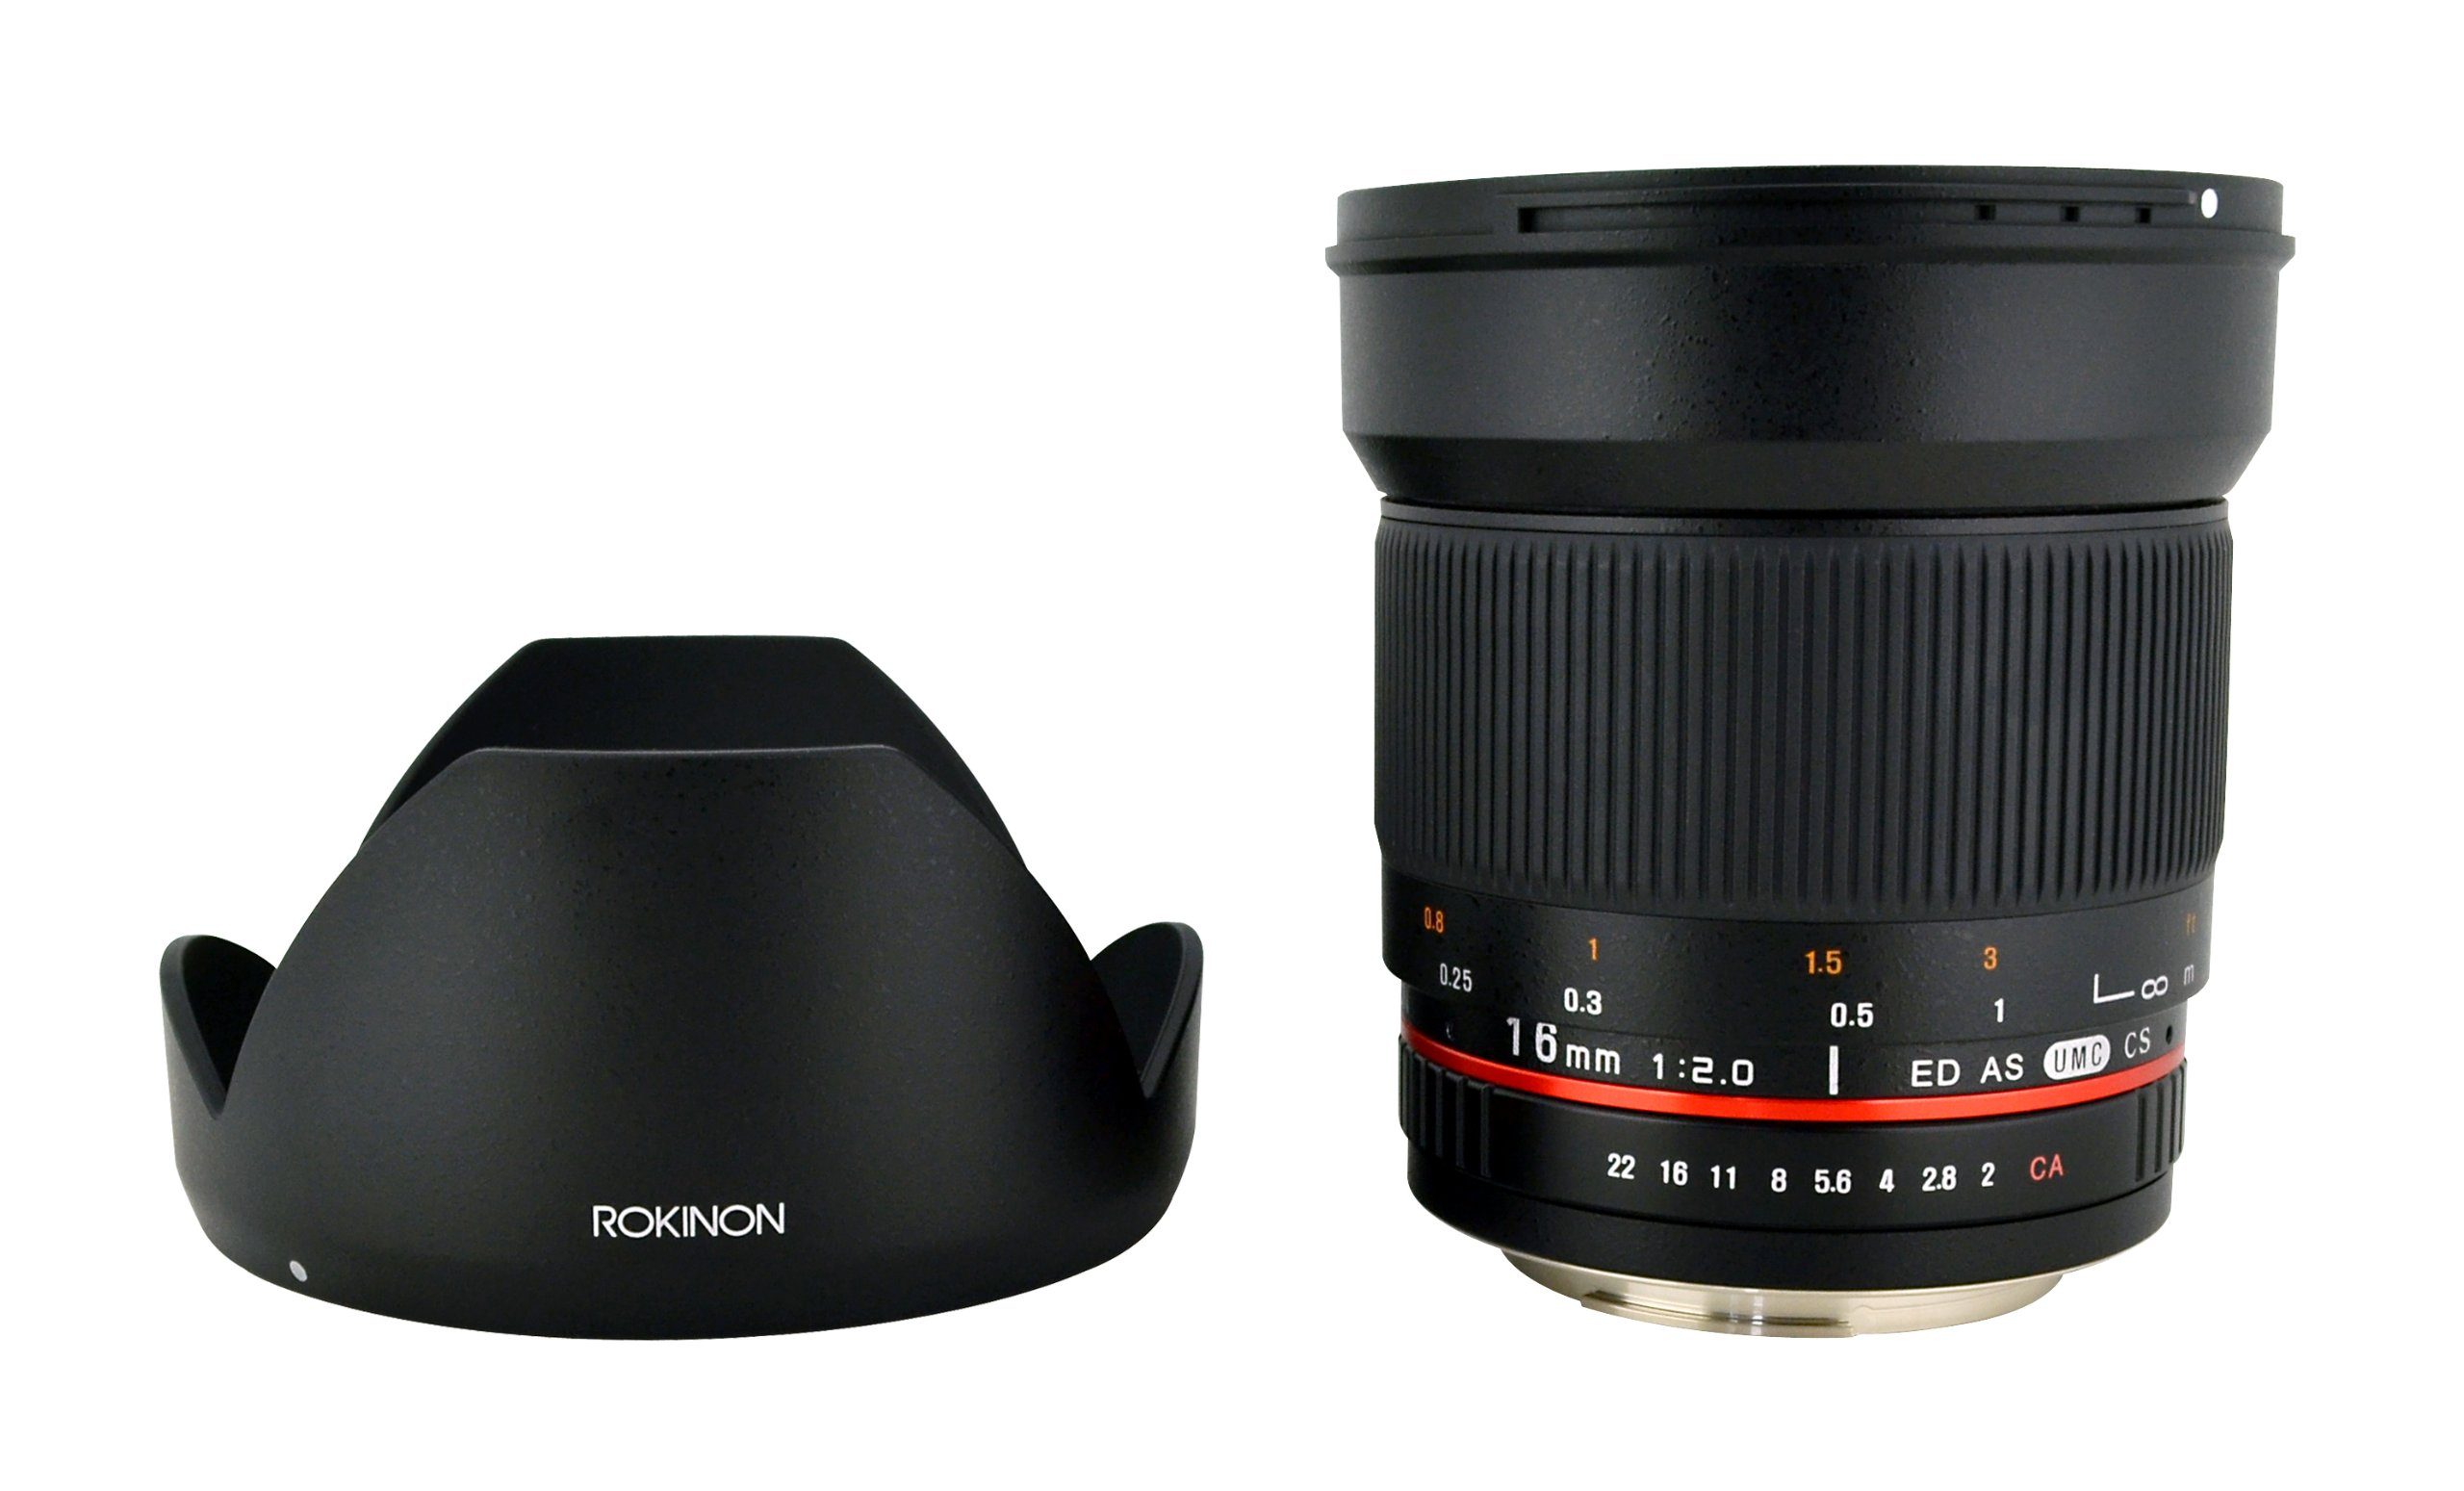 Rokinon Olympus Panasonic Mft Micro 4 3 Samyang For Canon 8mm F 35 Aspherical If Mc Fisheye Cs Ii Dh Detachable Hood